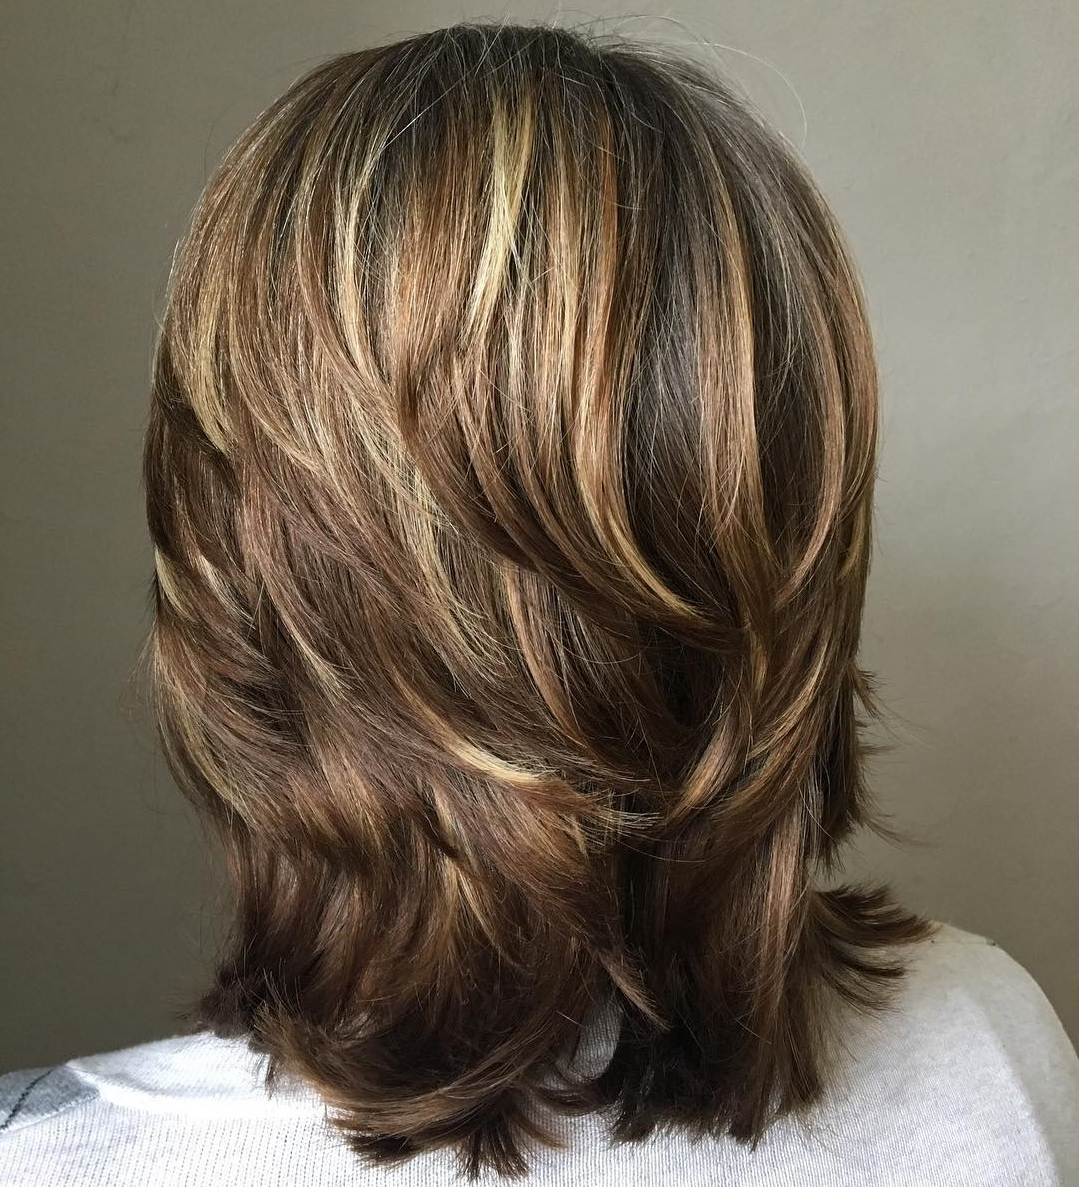 Fashionable Mid Back Brown U Shaped Haircuts With Swoopy Layers With 60 Most Universal Modern Shag Haircut Solutions (View 4 of 20)